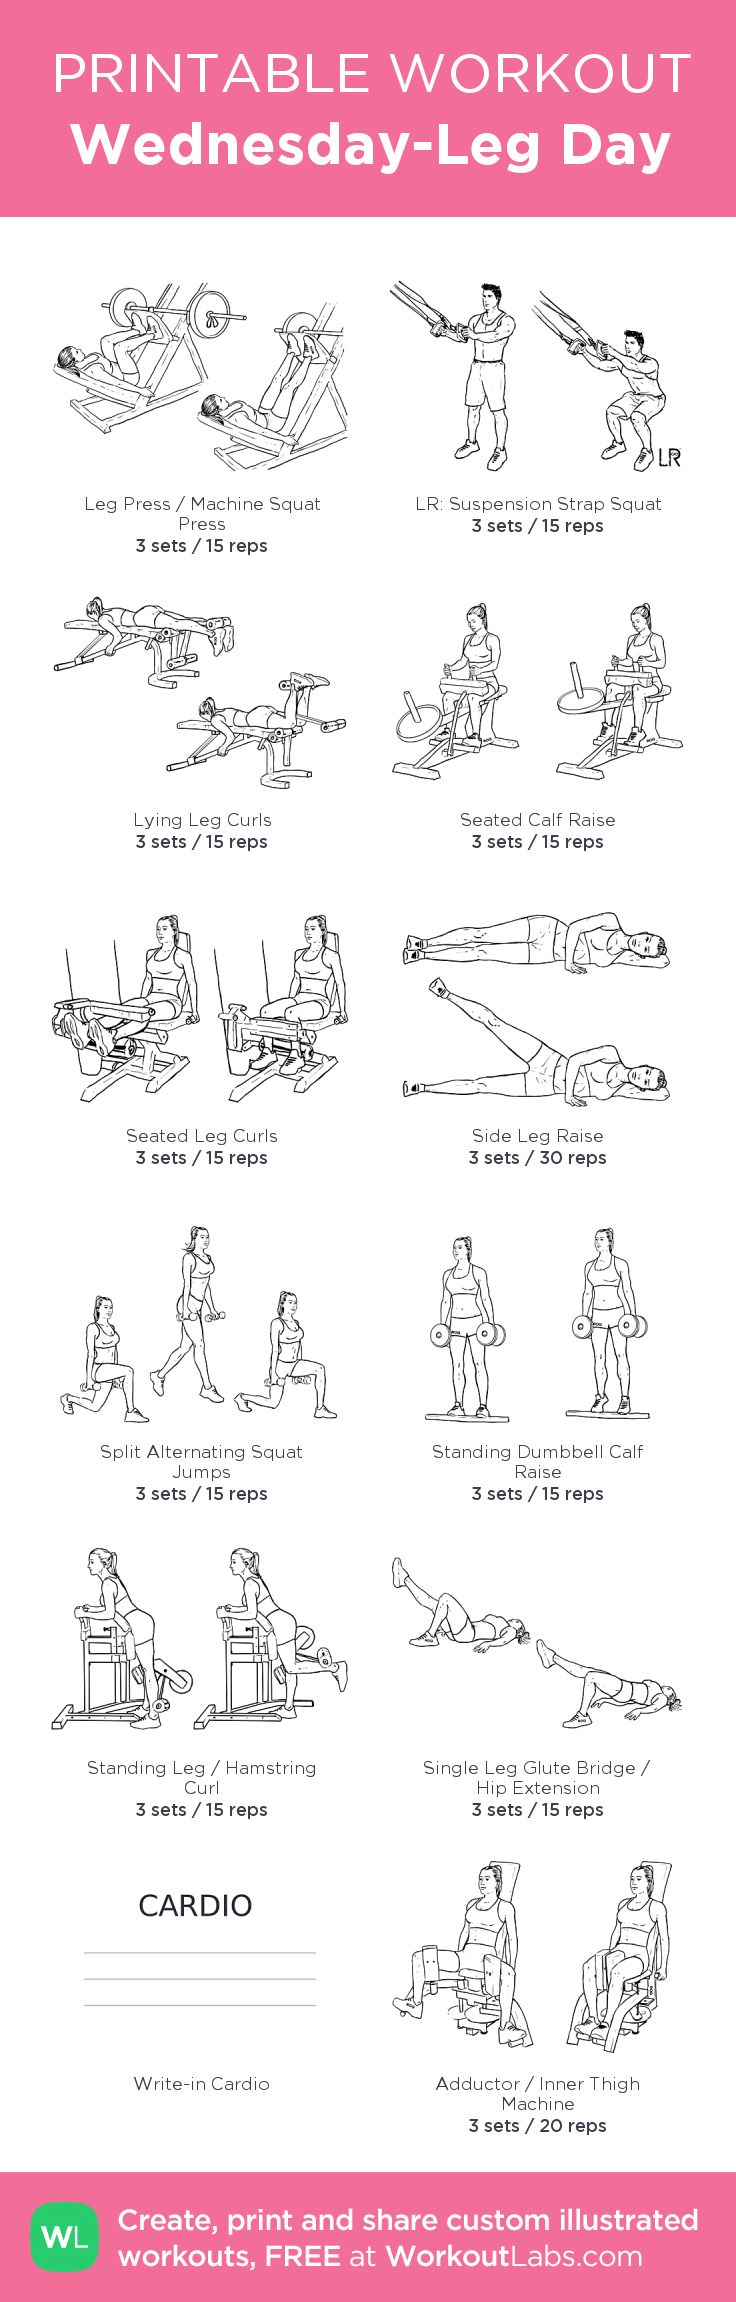 Wednesday-Leg Day – my custom workout created at WorkoutLabs.com • Click through to download as printable PDF! #customworkout